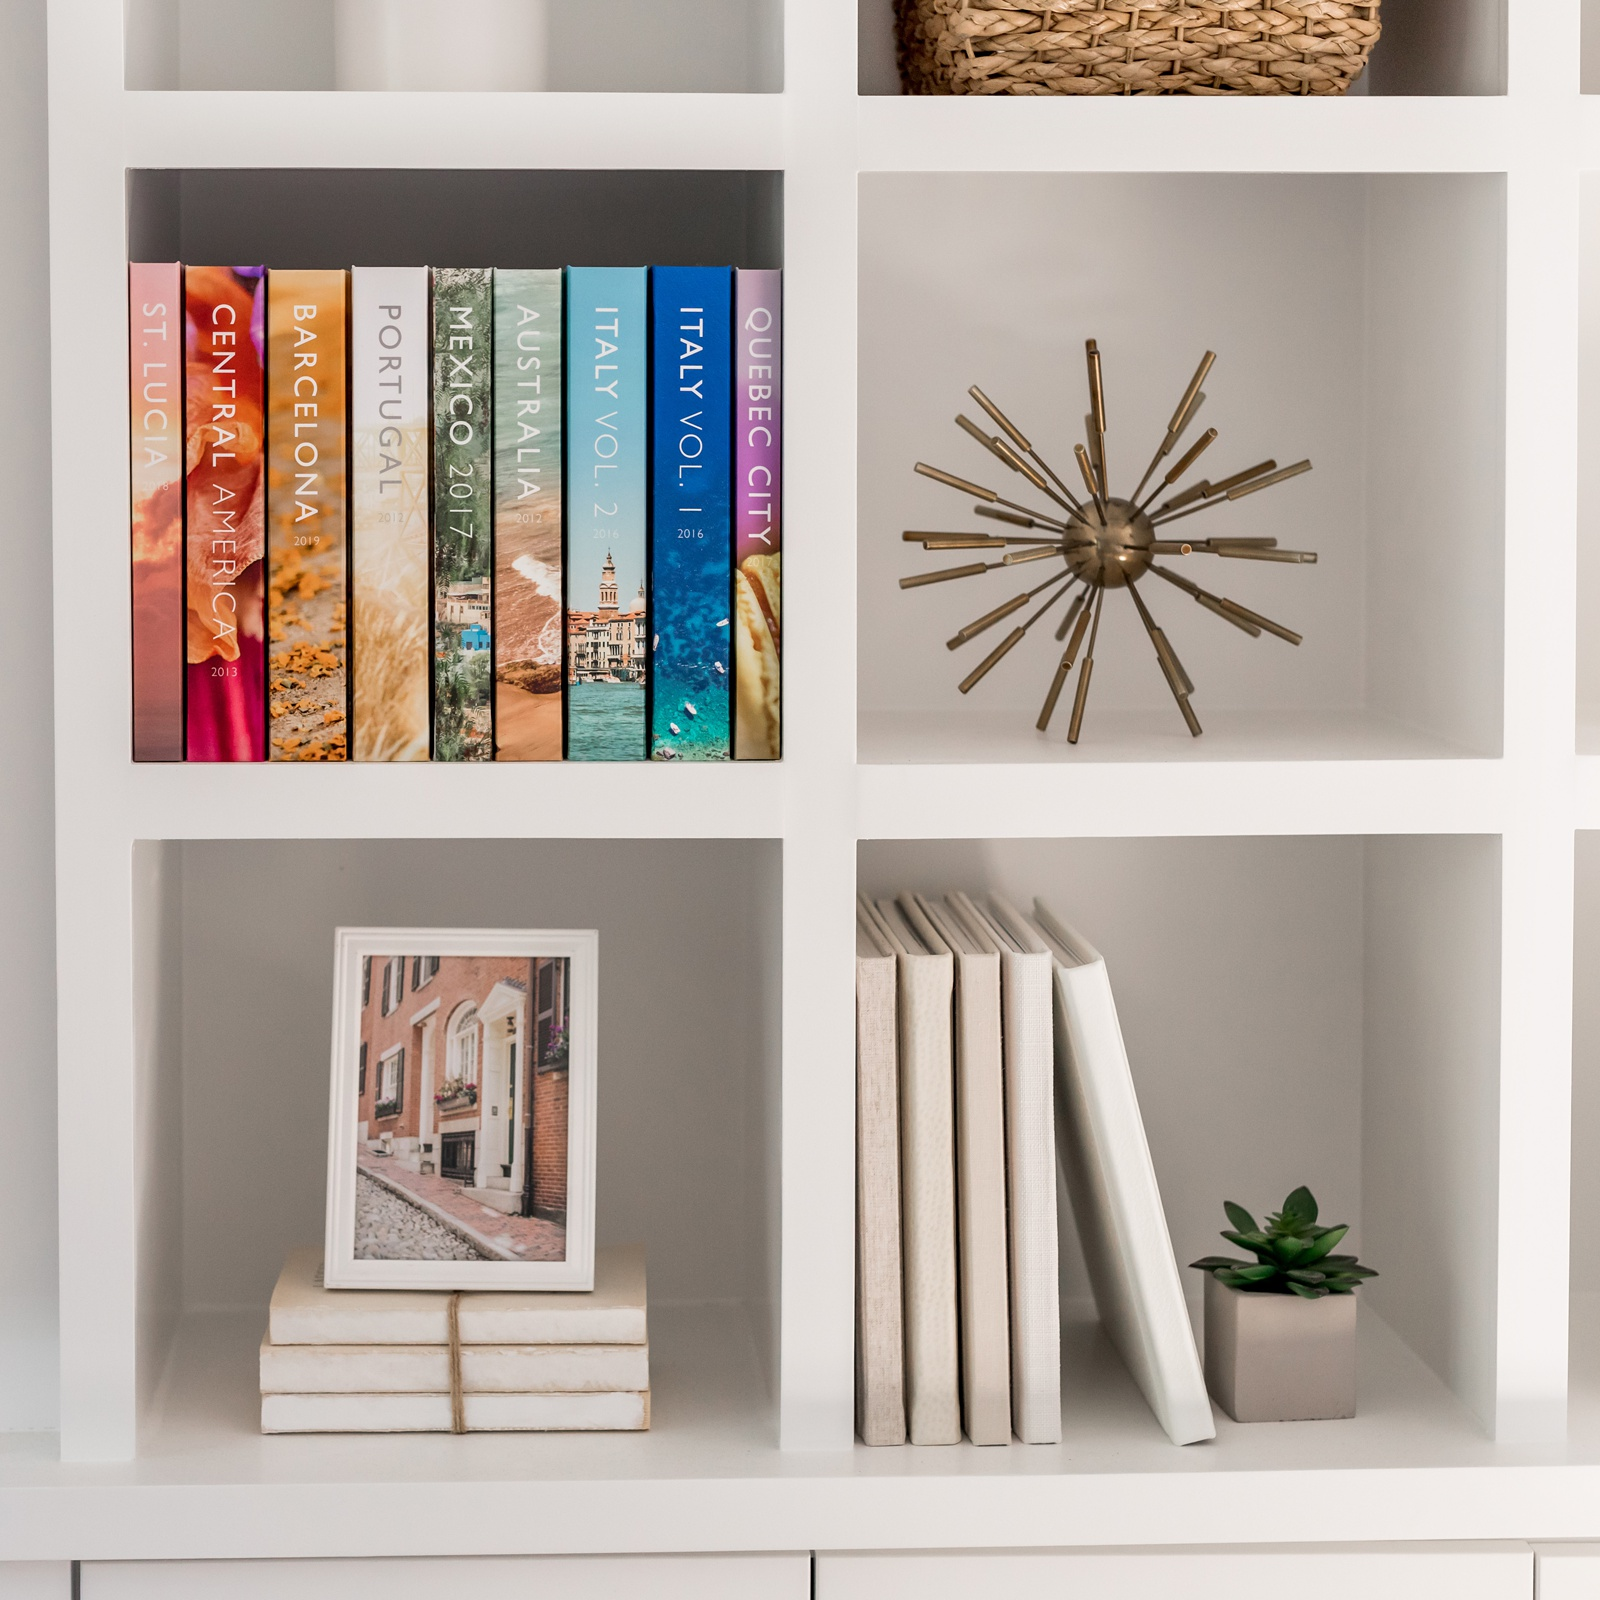 bookshelf with colorful photo albums